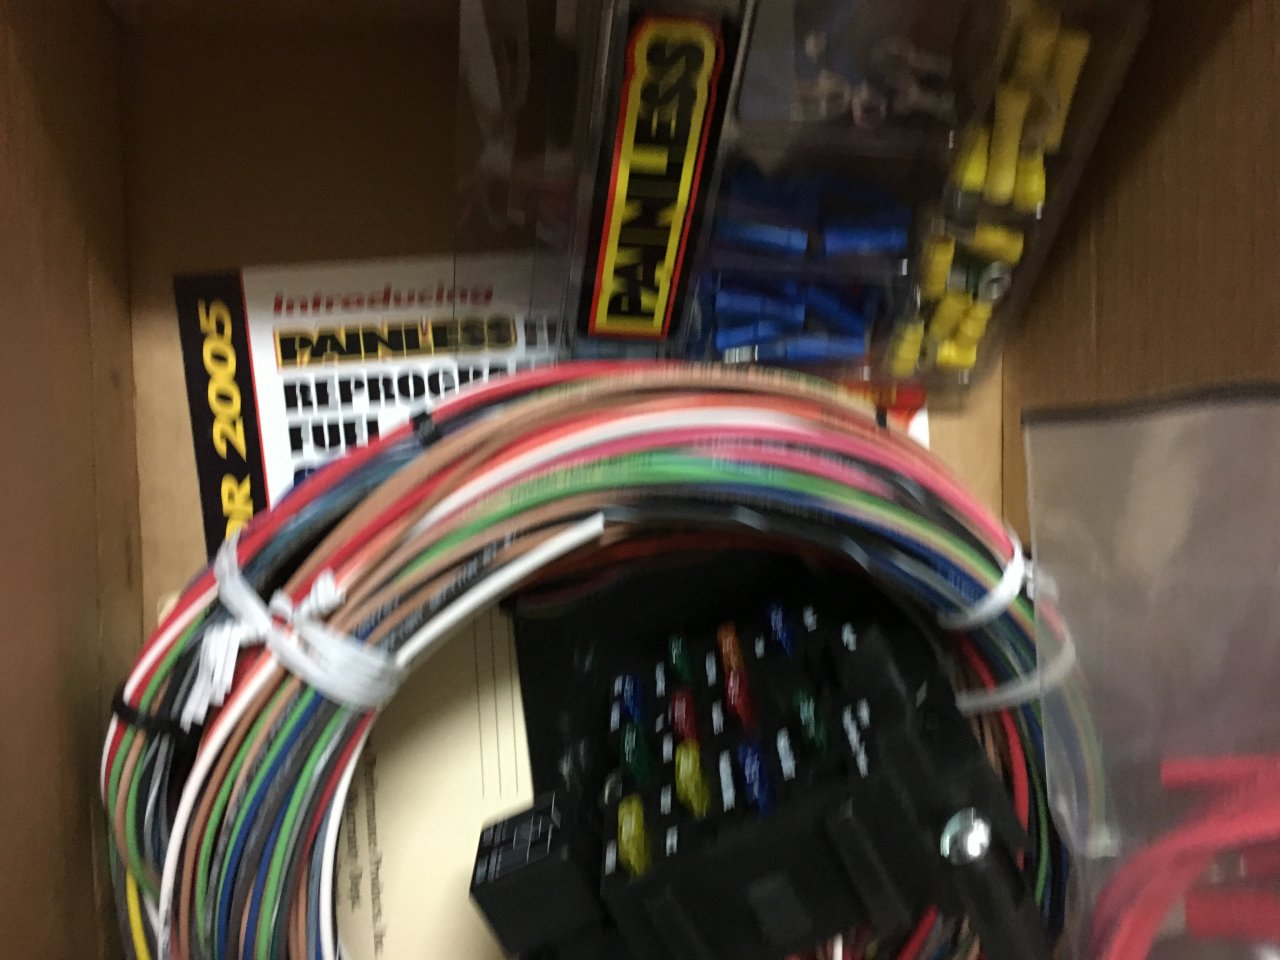 Painless Wiring Harness 10107 Just Diagrams Datsun 510 For Sale New In Box Ih8mud Forum